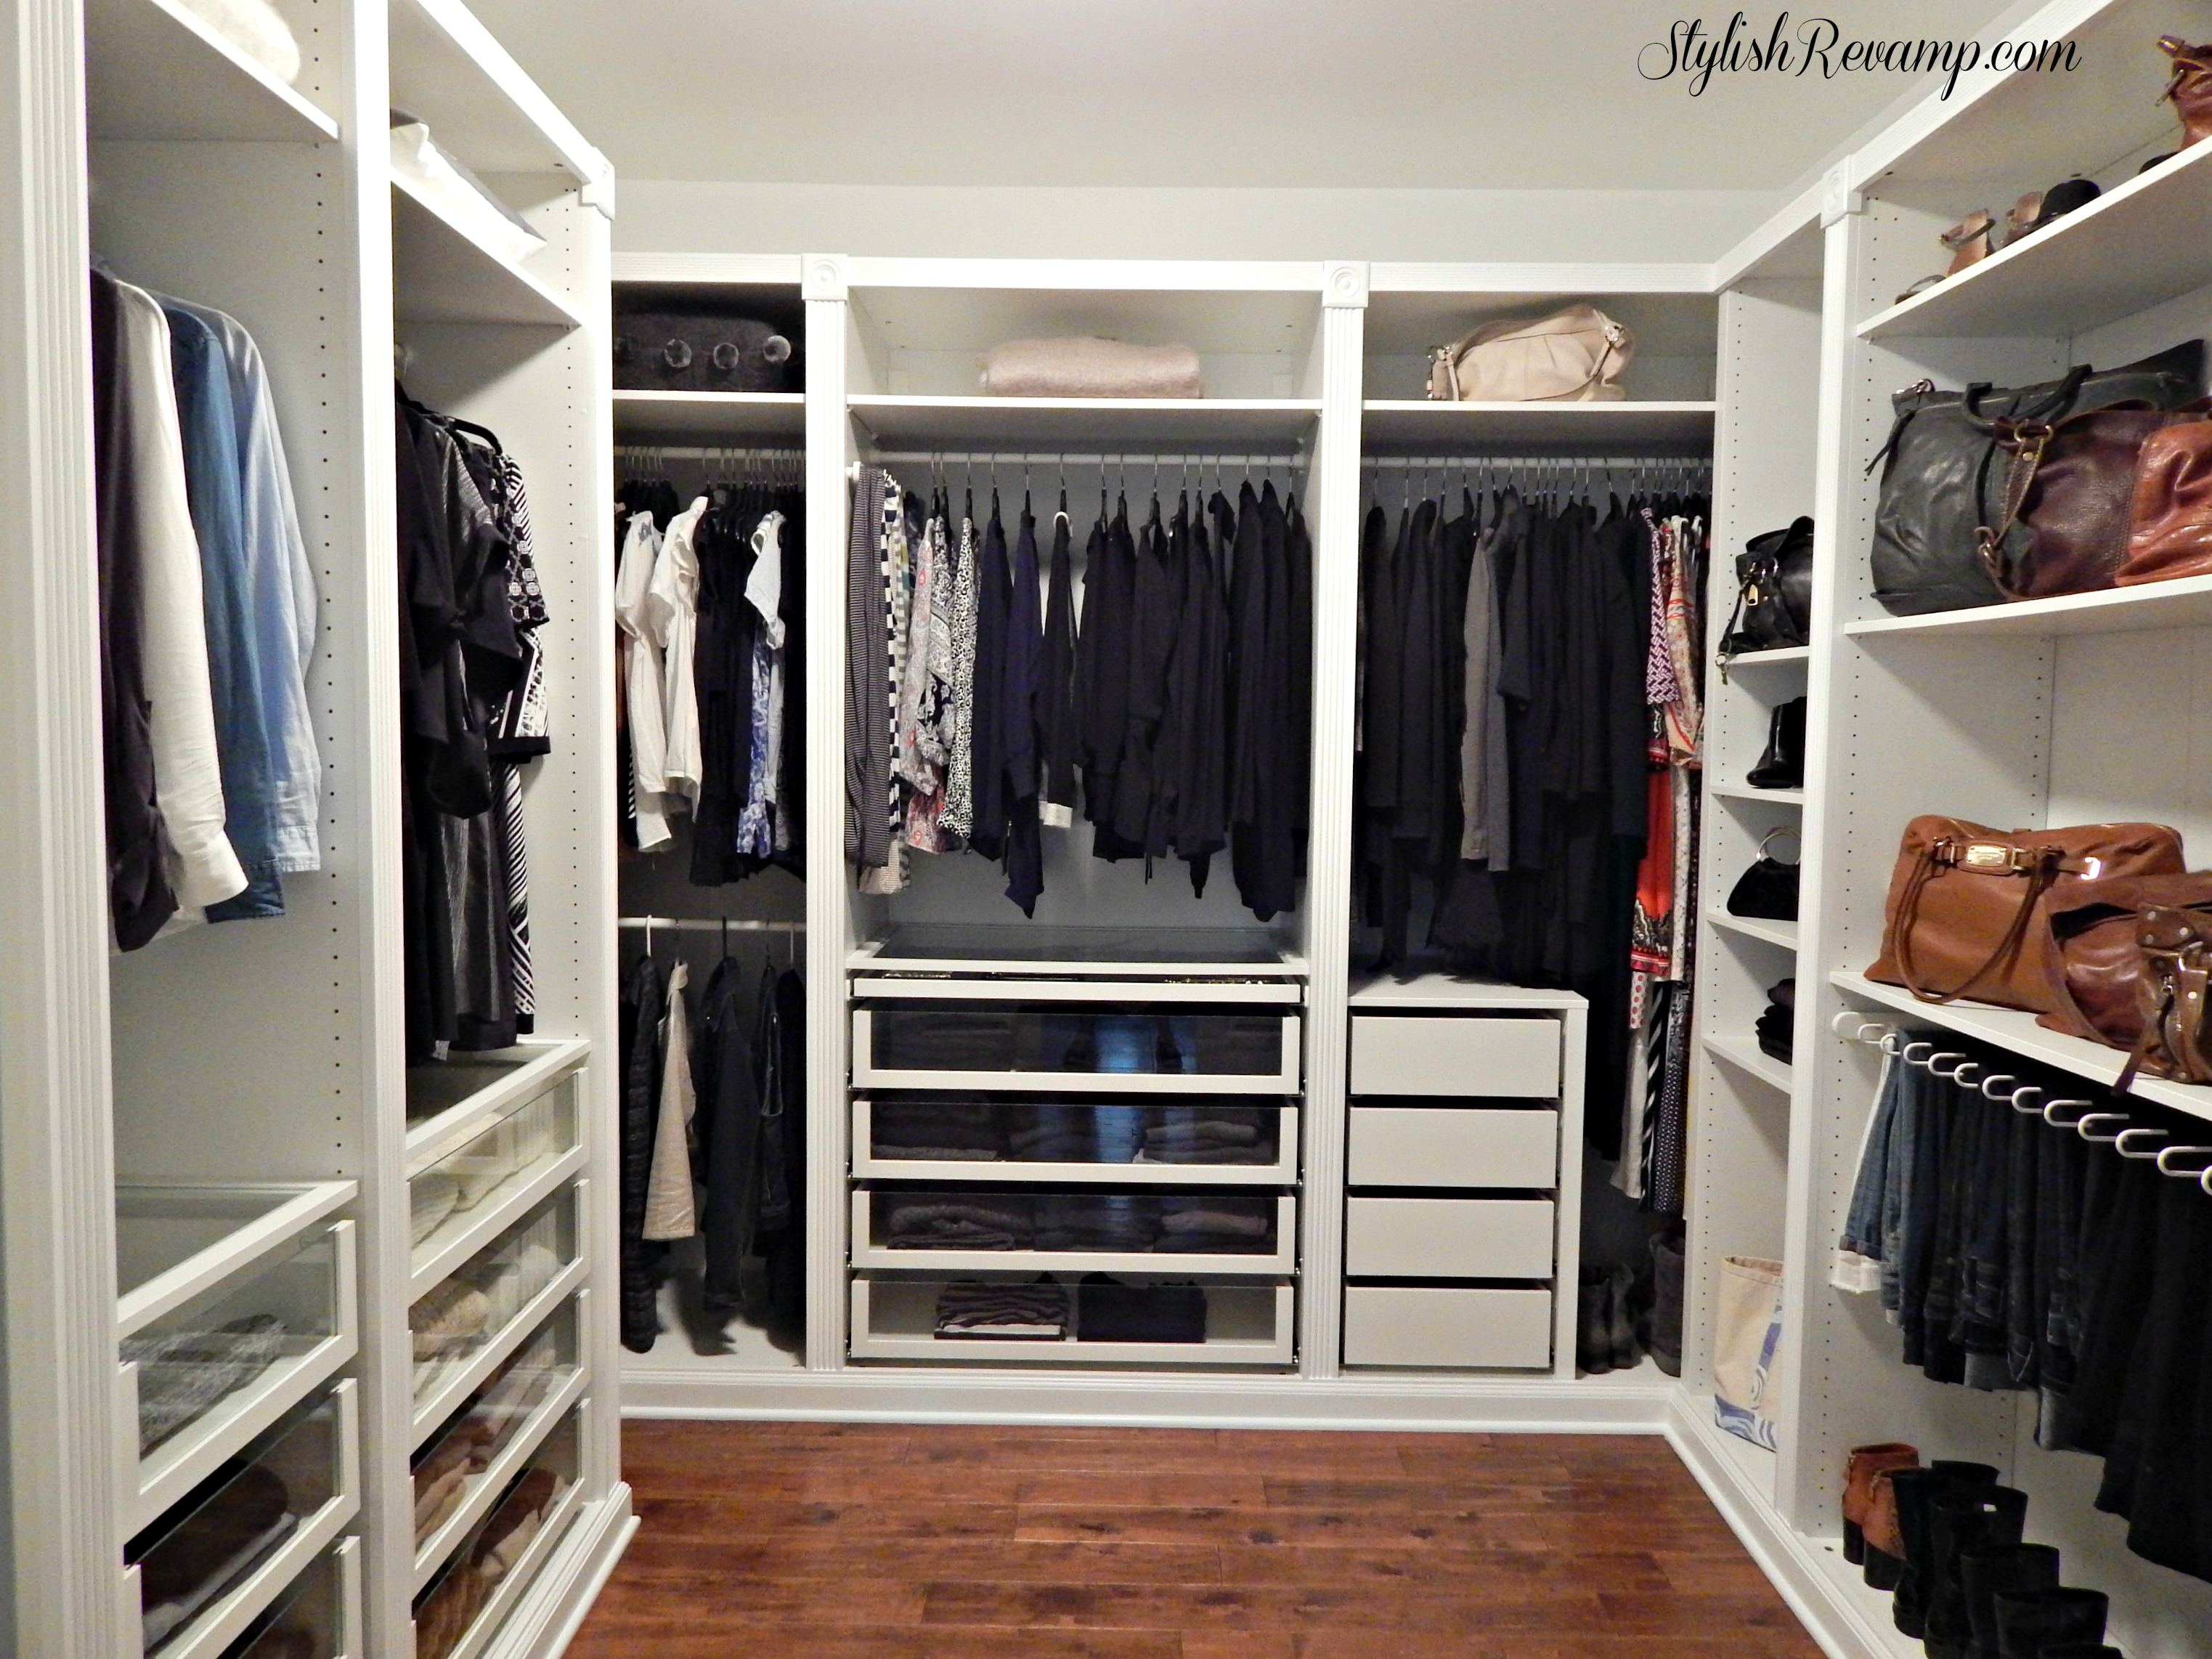 Do It Yourself Home Design: Revamping My Closet With The IKEA Pax Wardrobe